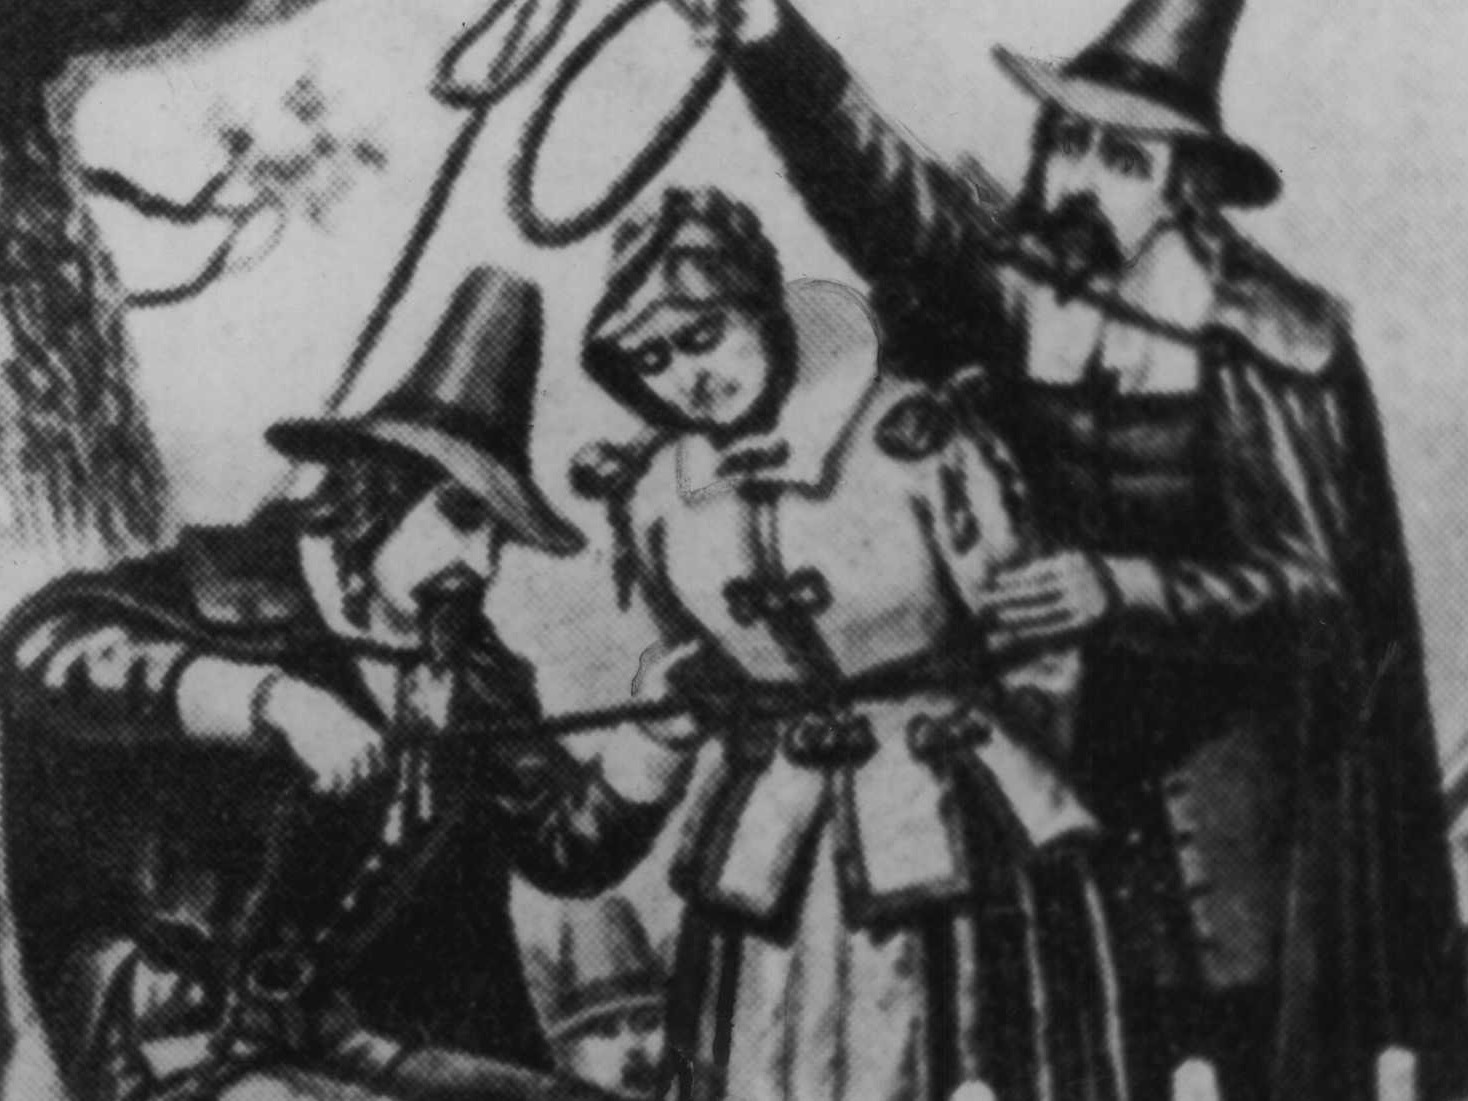 An image depicting the Witch Trials.